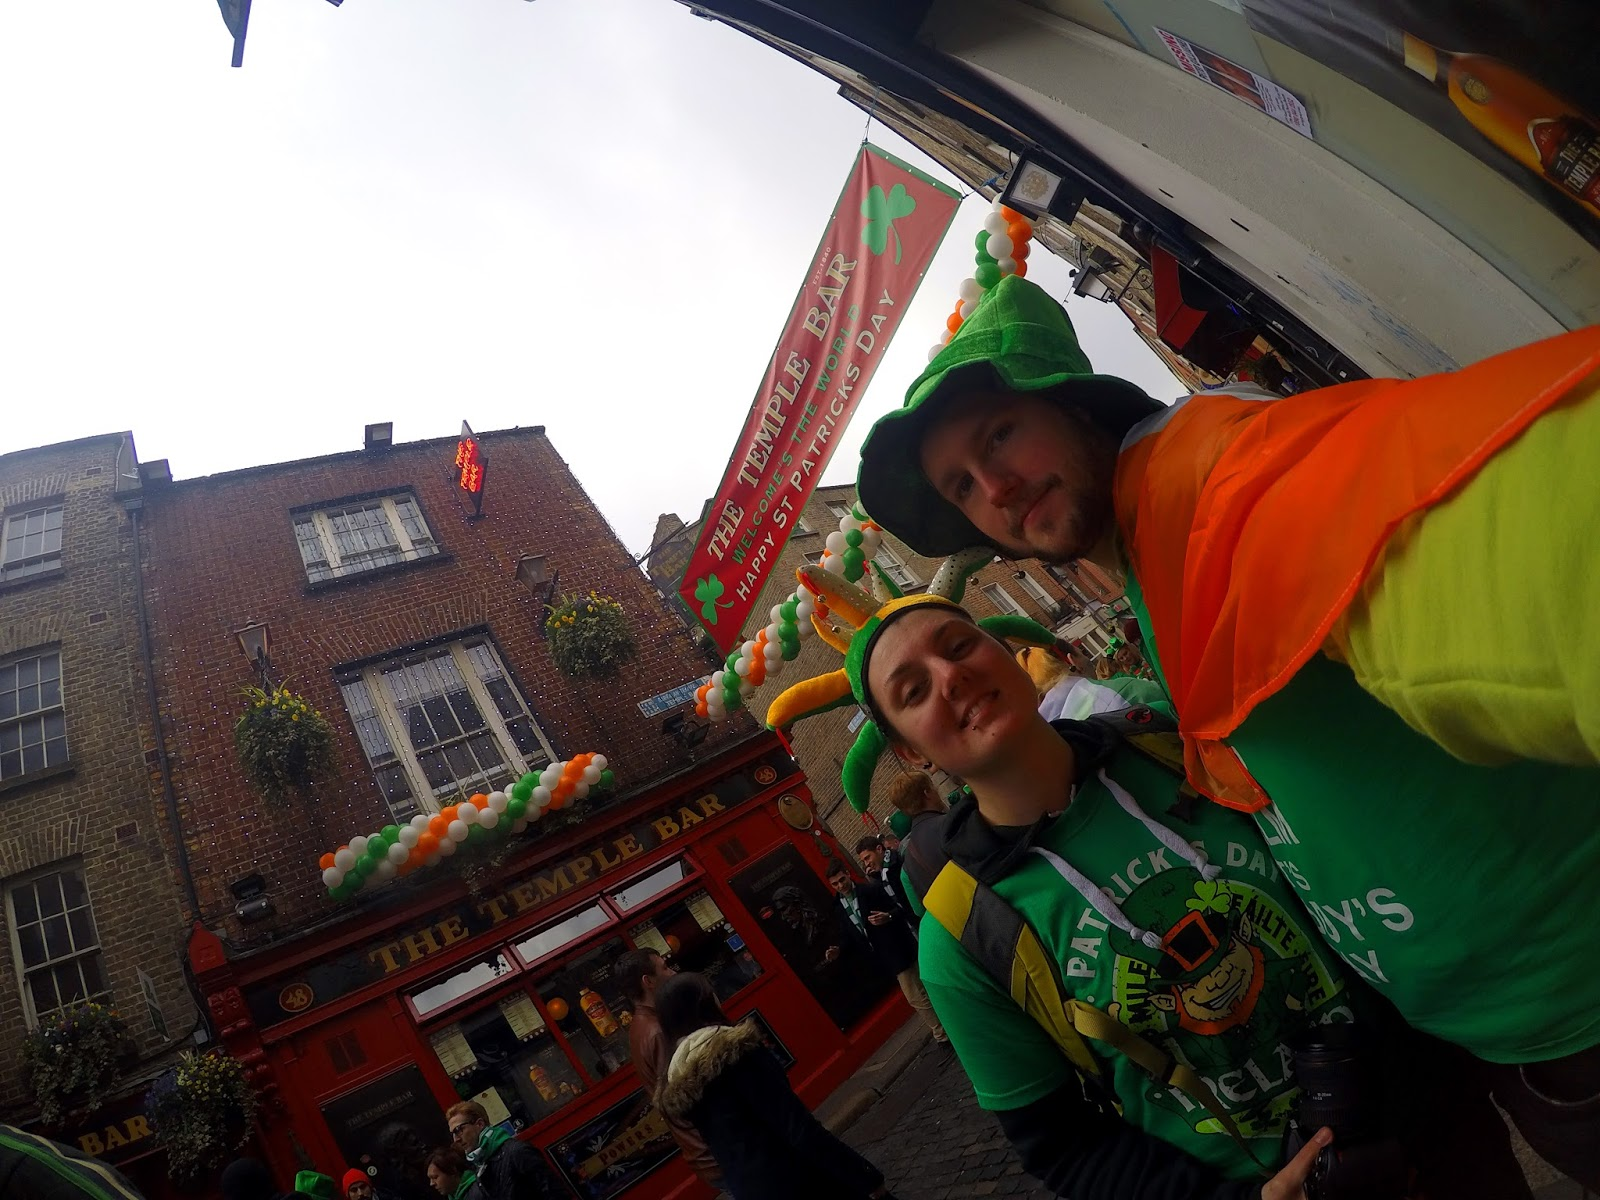 http://www.theroamingrenegades.com/2015/04/experiencing-crazy-dublin-on-st.html